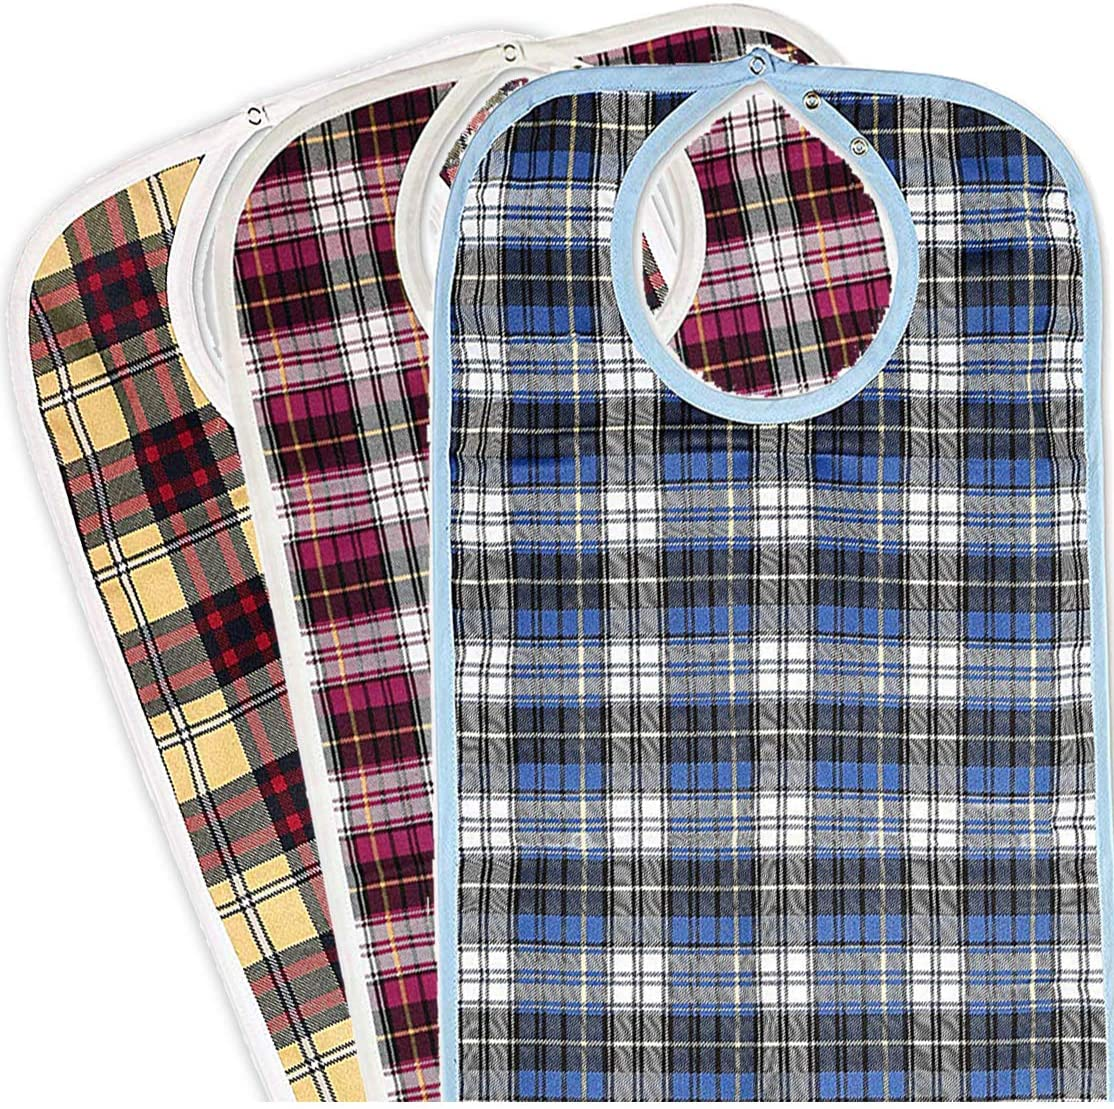 Medokare Adult Bib Clothing Protector - 3 Pack Long Washable Reusable Bibs for Seniors for Eating at Mealtime, Waterproof Stain Resistant Bibs for Elderly: Health & Personal Care